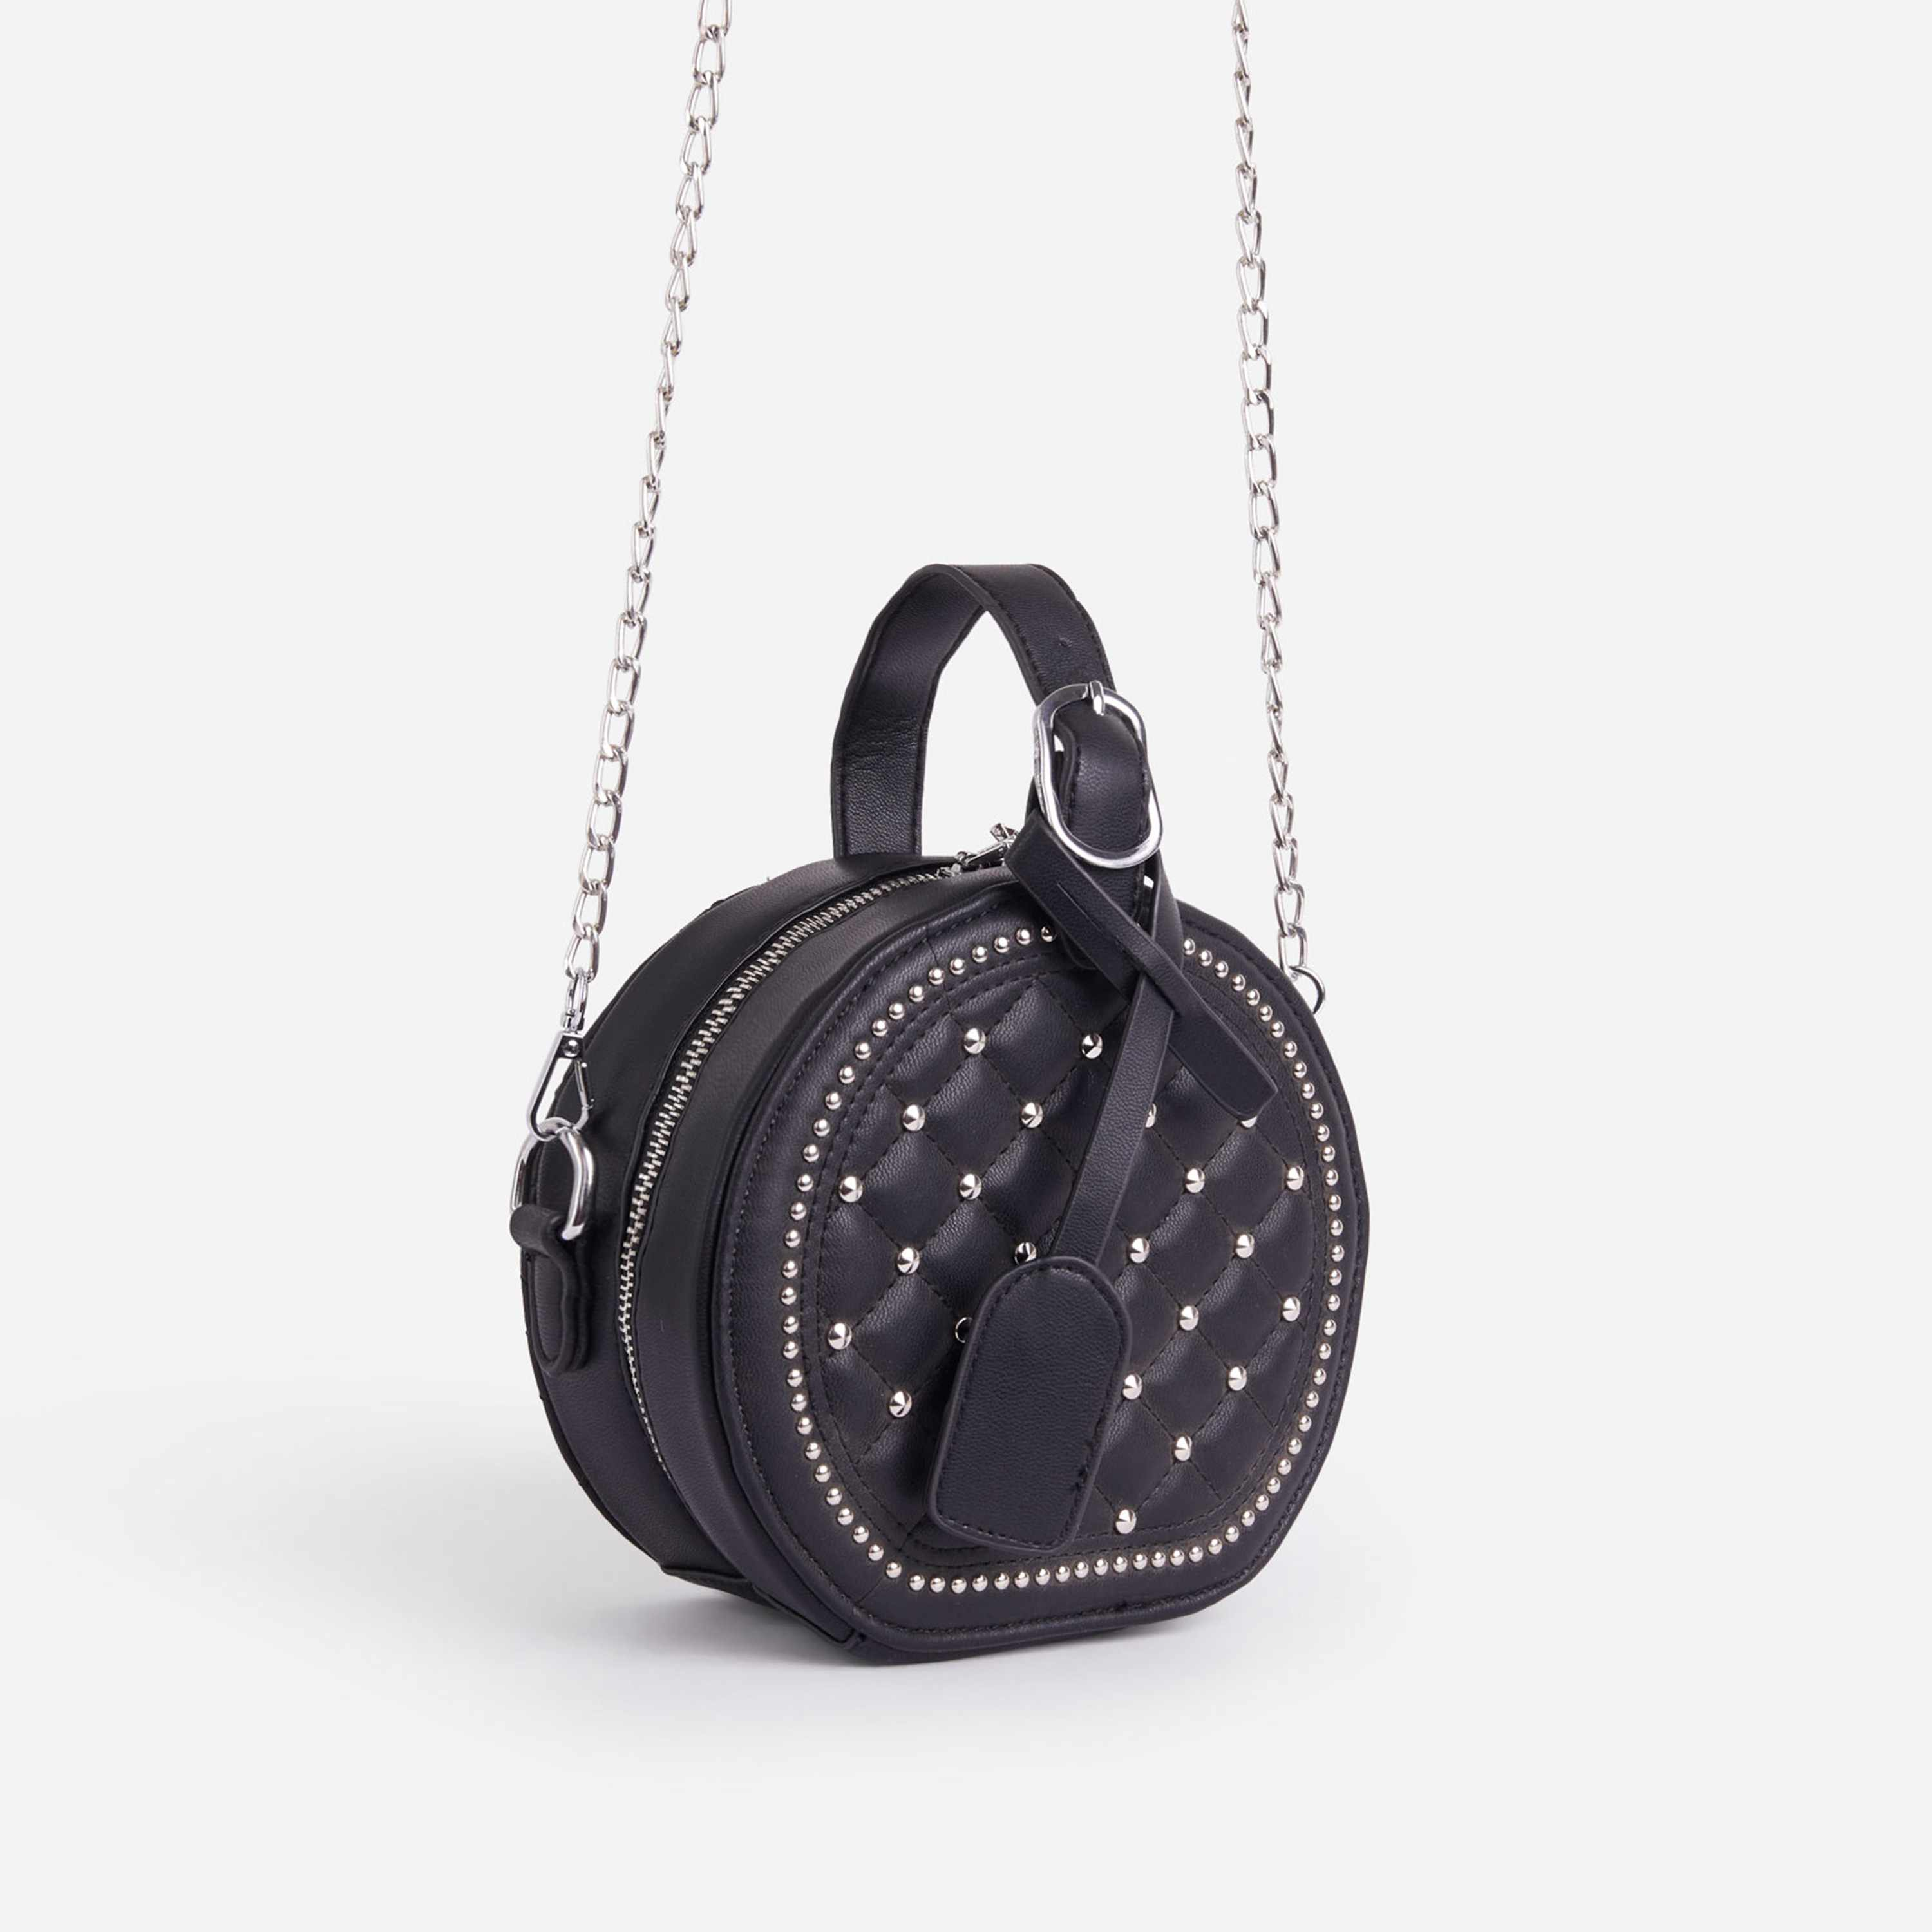 Shellie Quilted Circle Cross Body Bag In Black Faux Leather